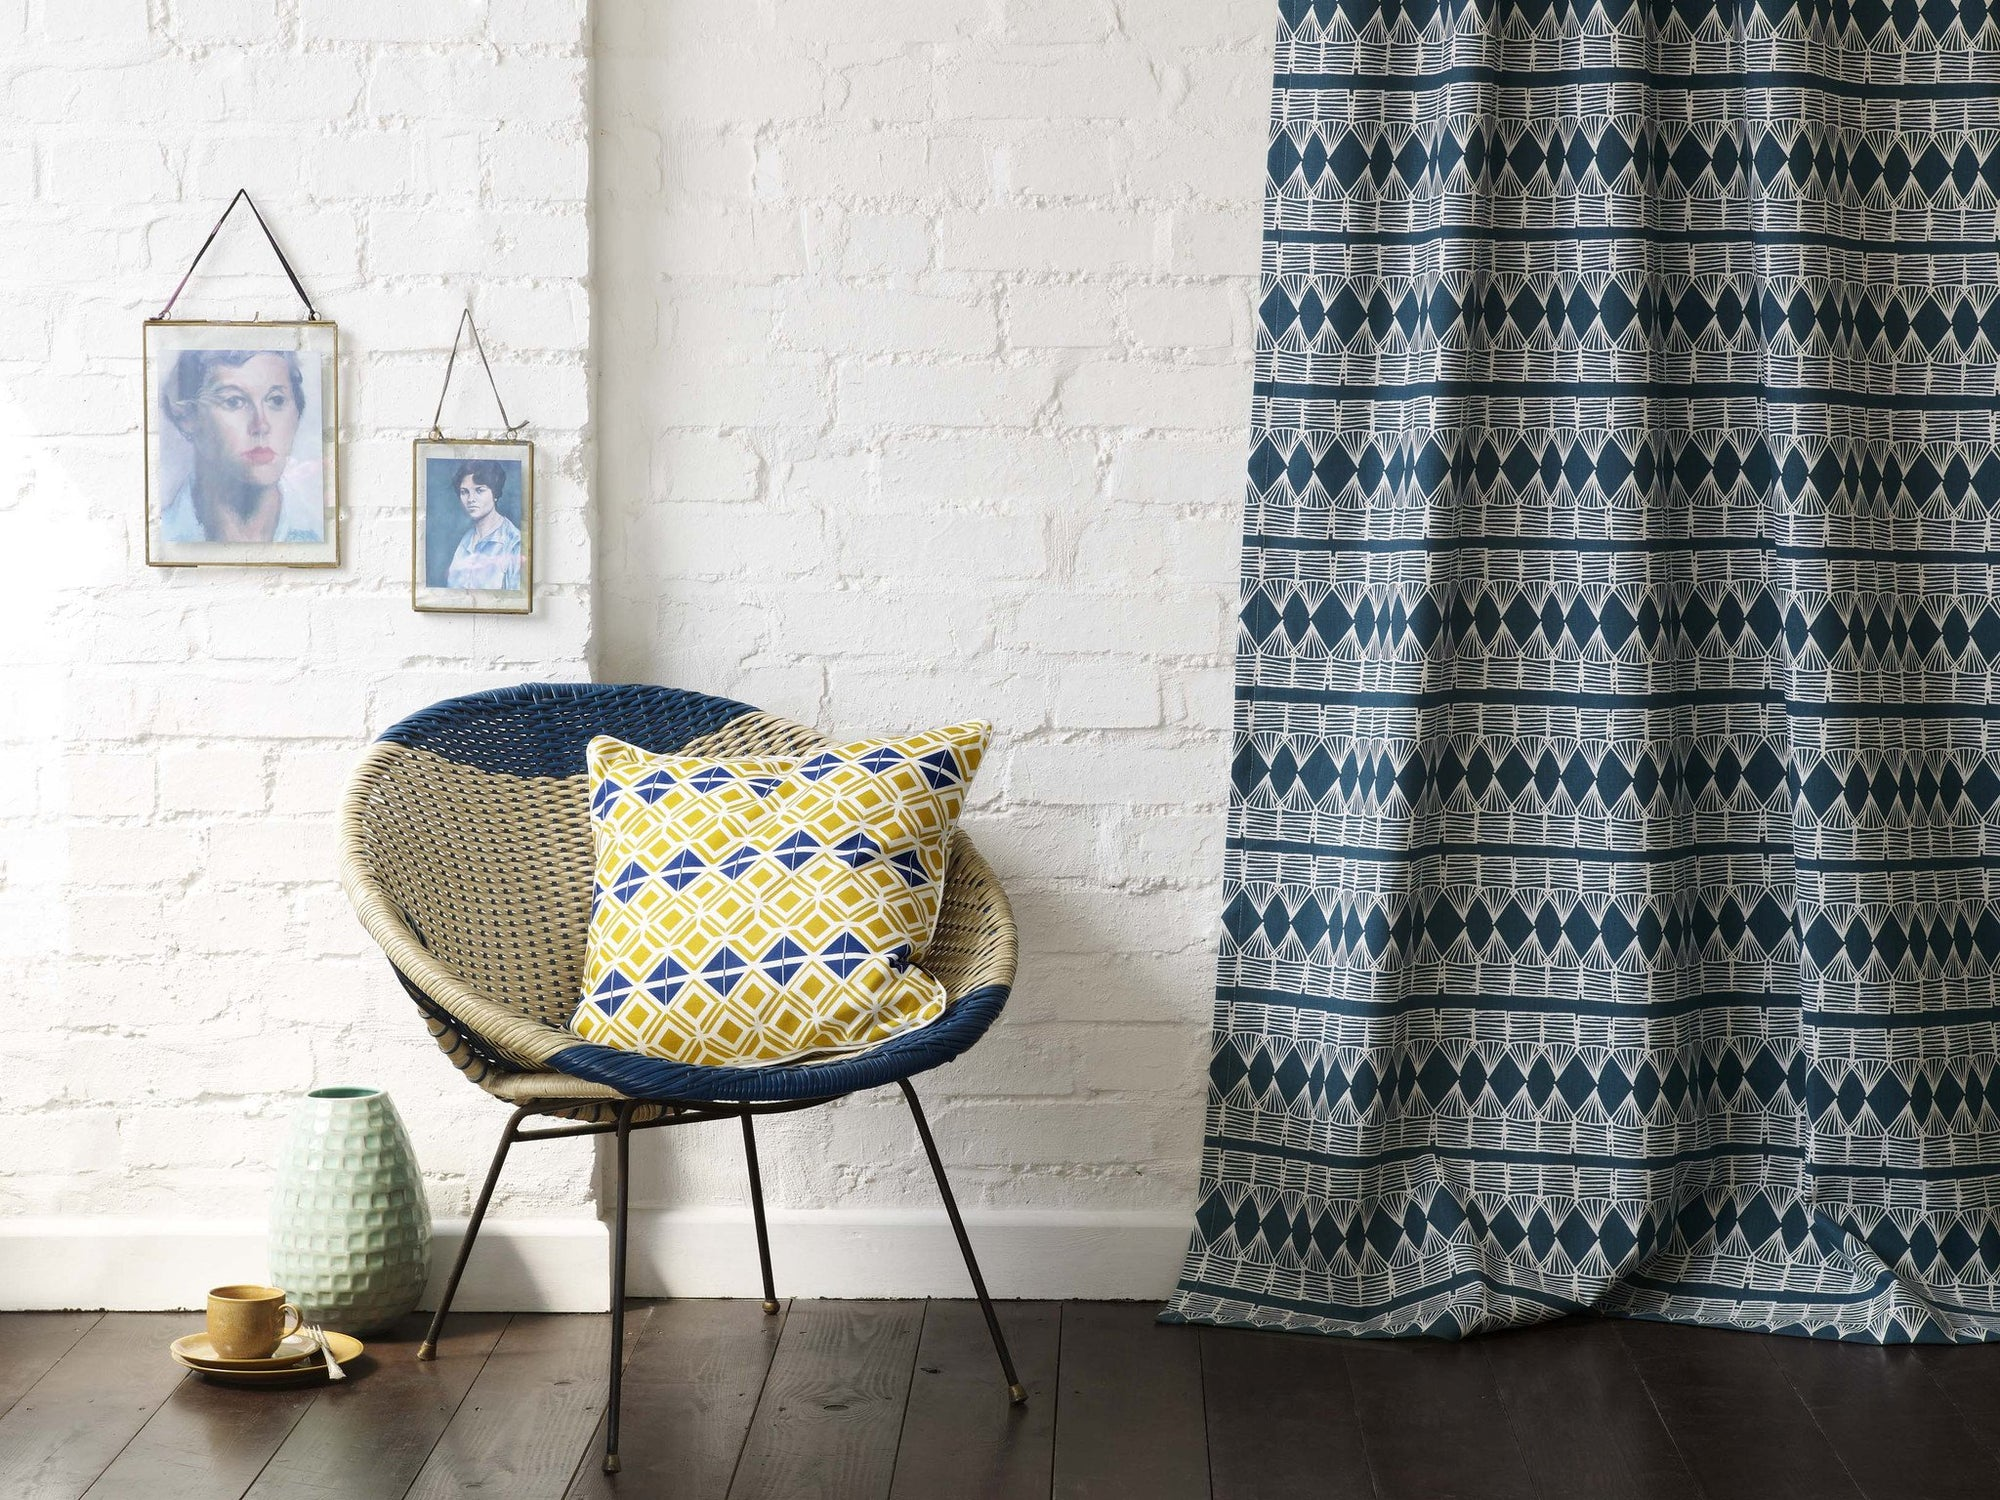 Modern graphic pattern printed fabrics in cotton, linen, canvas perfect for curtains, blinds and upholstery. Ships from Canada worldwide including the USA